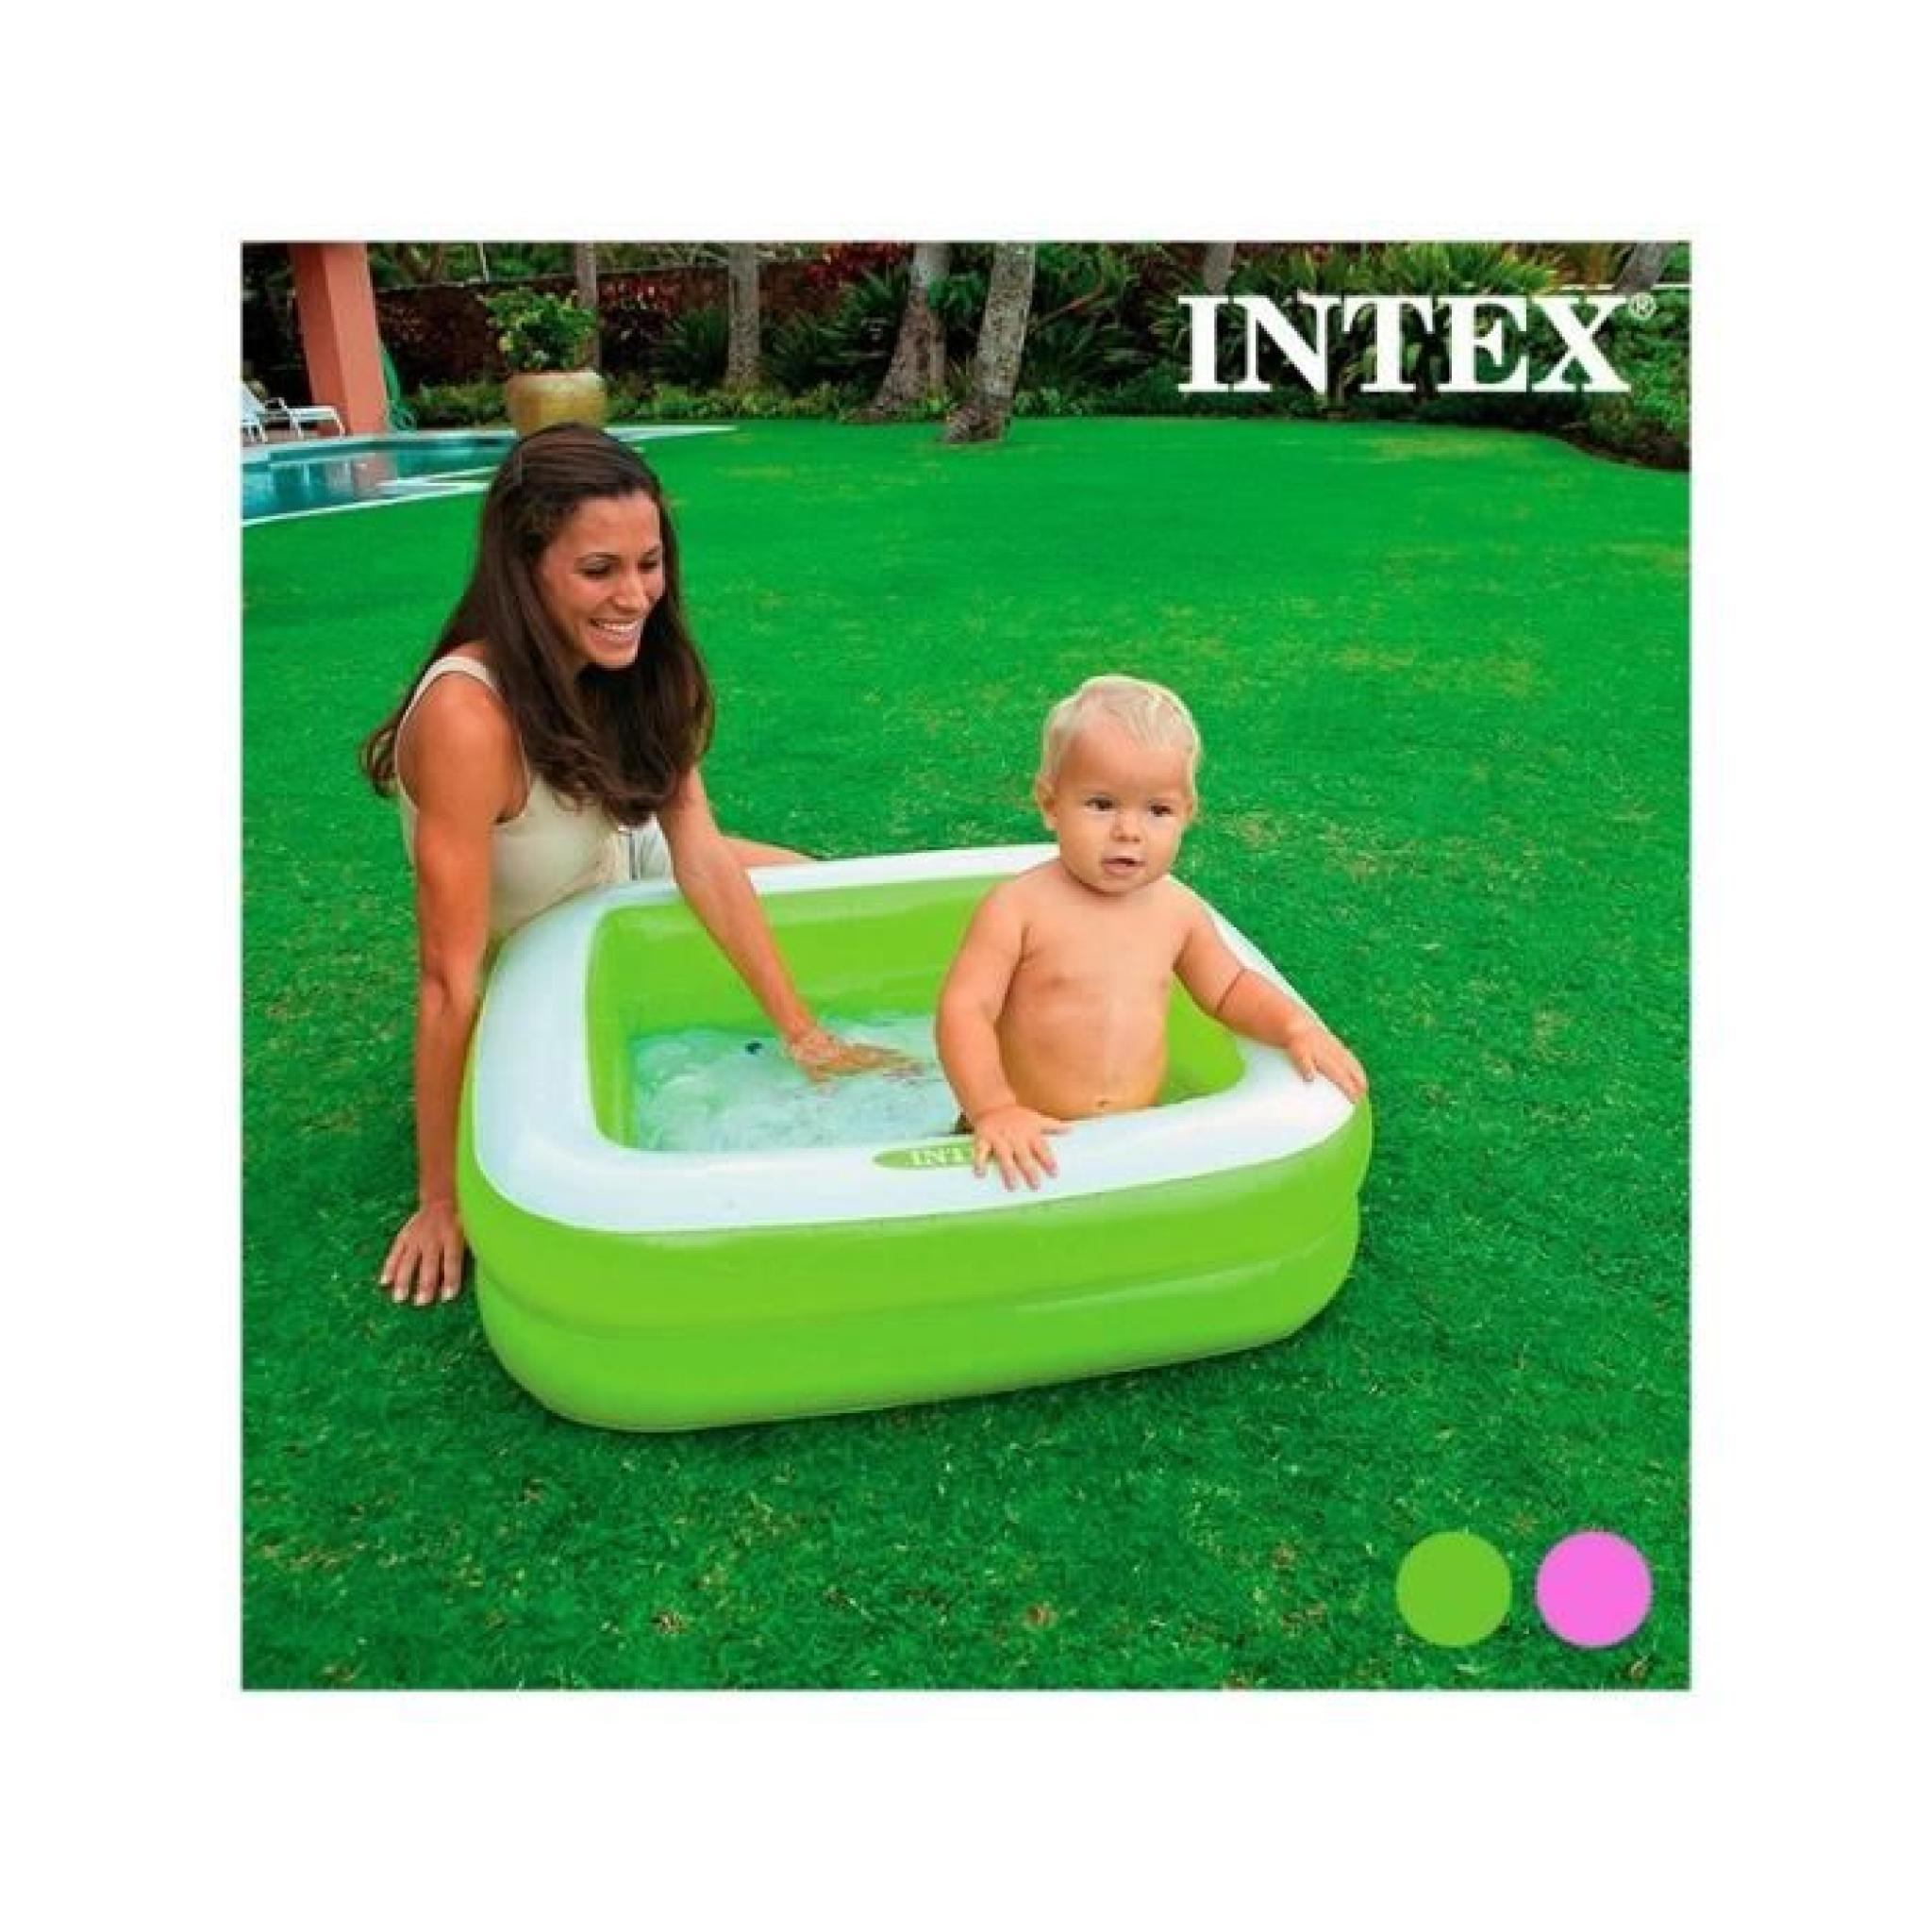 piscine gonflable carr e pour enfants intex rose achat vente piscine enfant pas cher. Black Bedroom Furniture Sets. Home Design Ideas